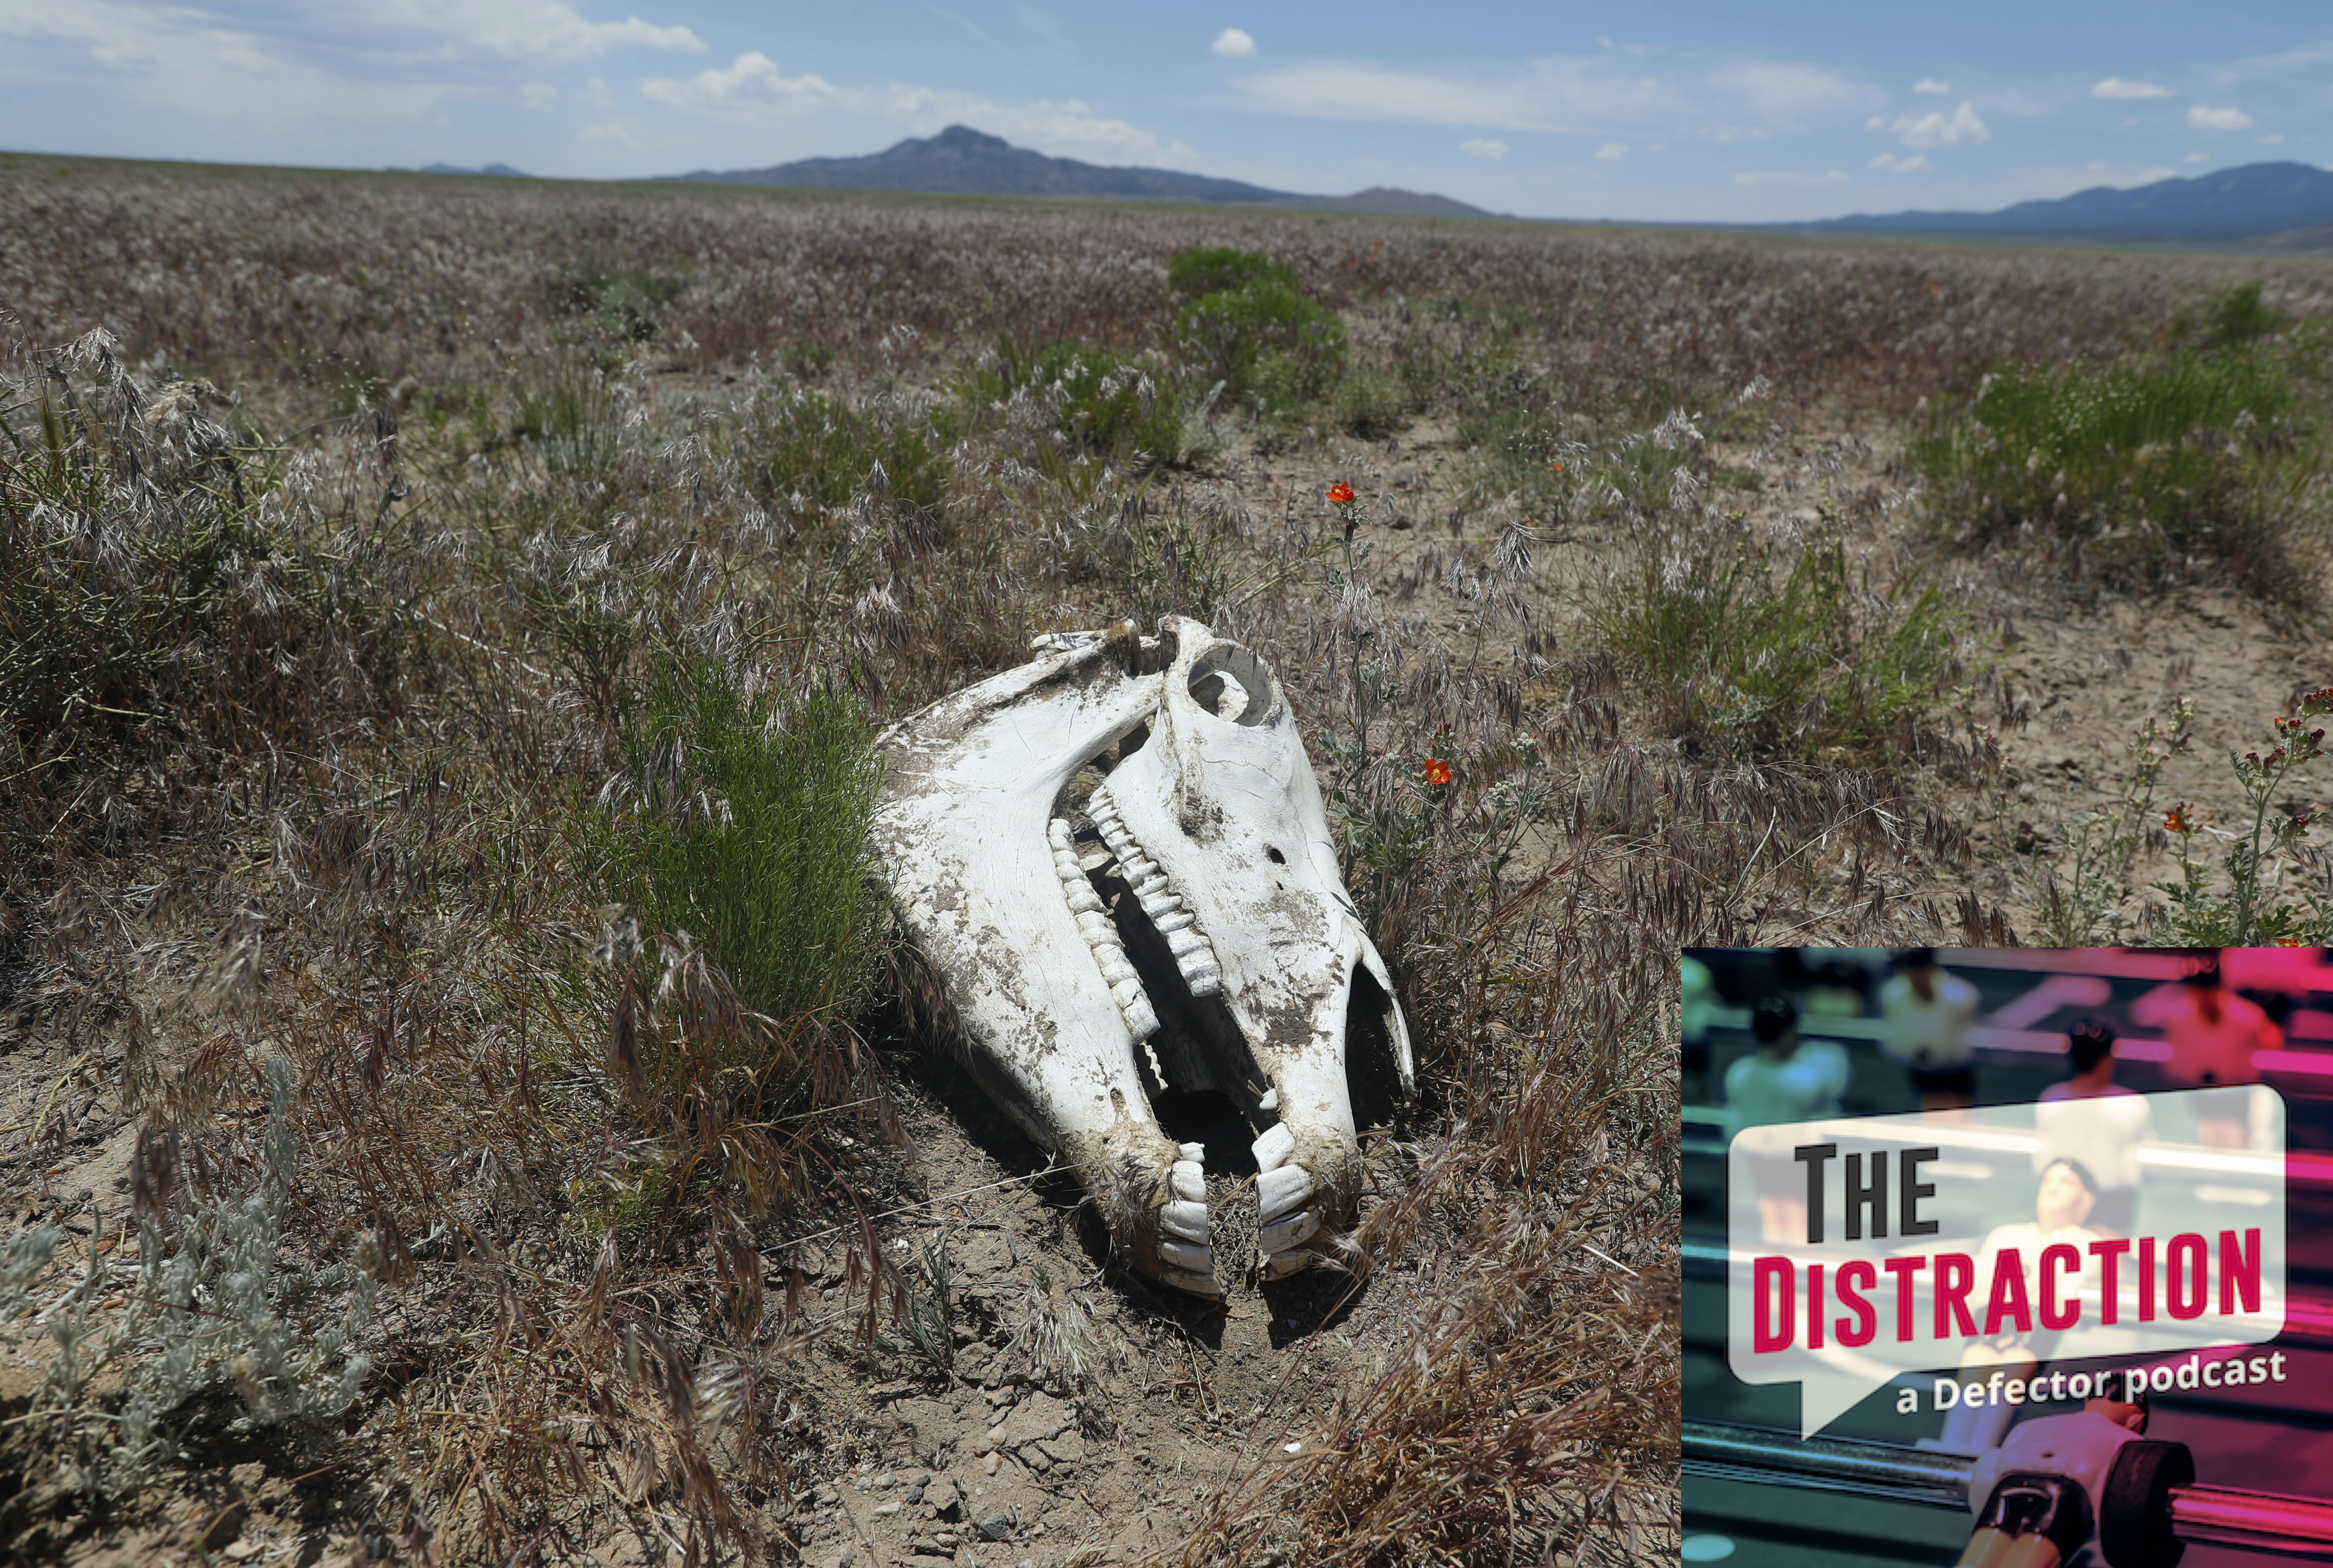 A wild horse's skull sitting on federal land. It's a whole thing, don't worry about it.